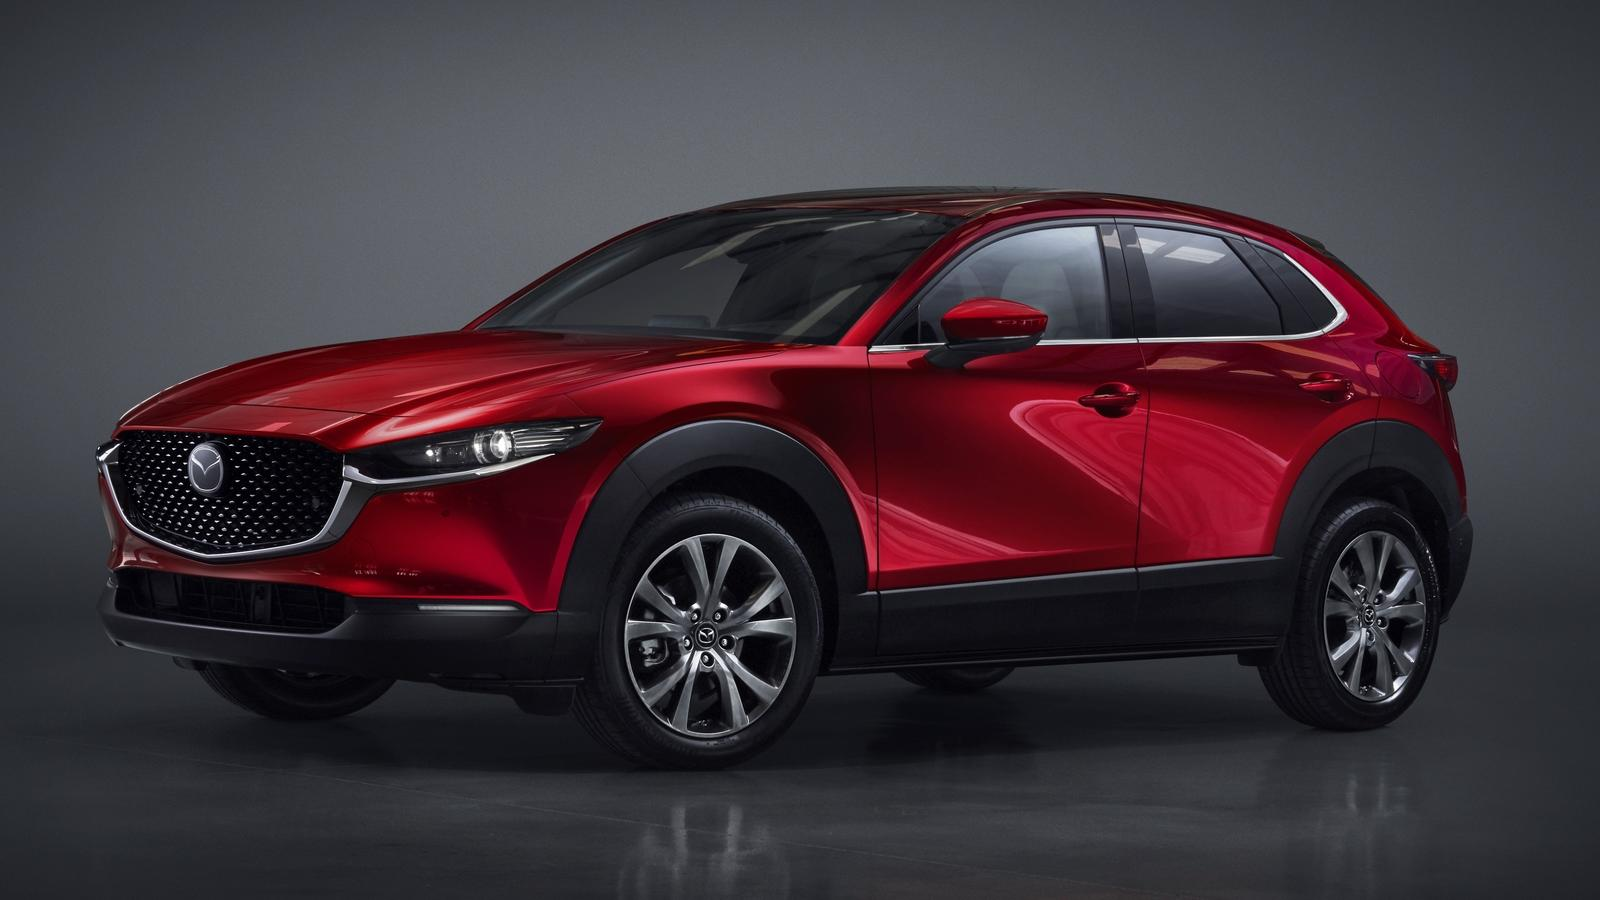 2019 Mazda CX-30 Broadens Mazda's Crossover Range Pictures, Photos, Wallpapers. | Top Speed